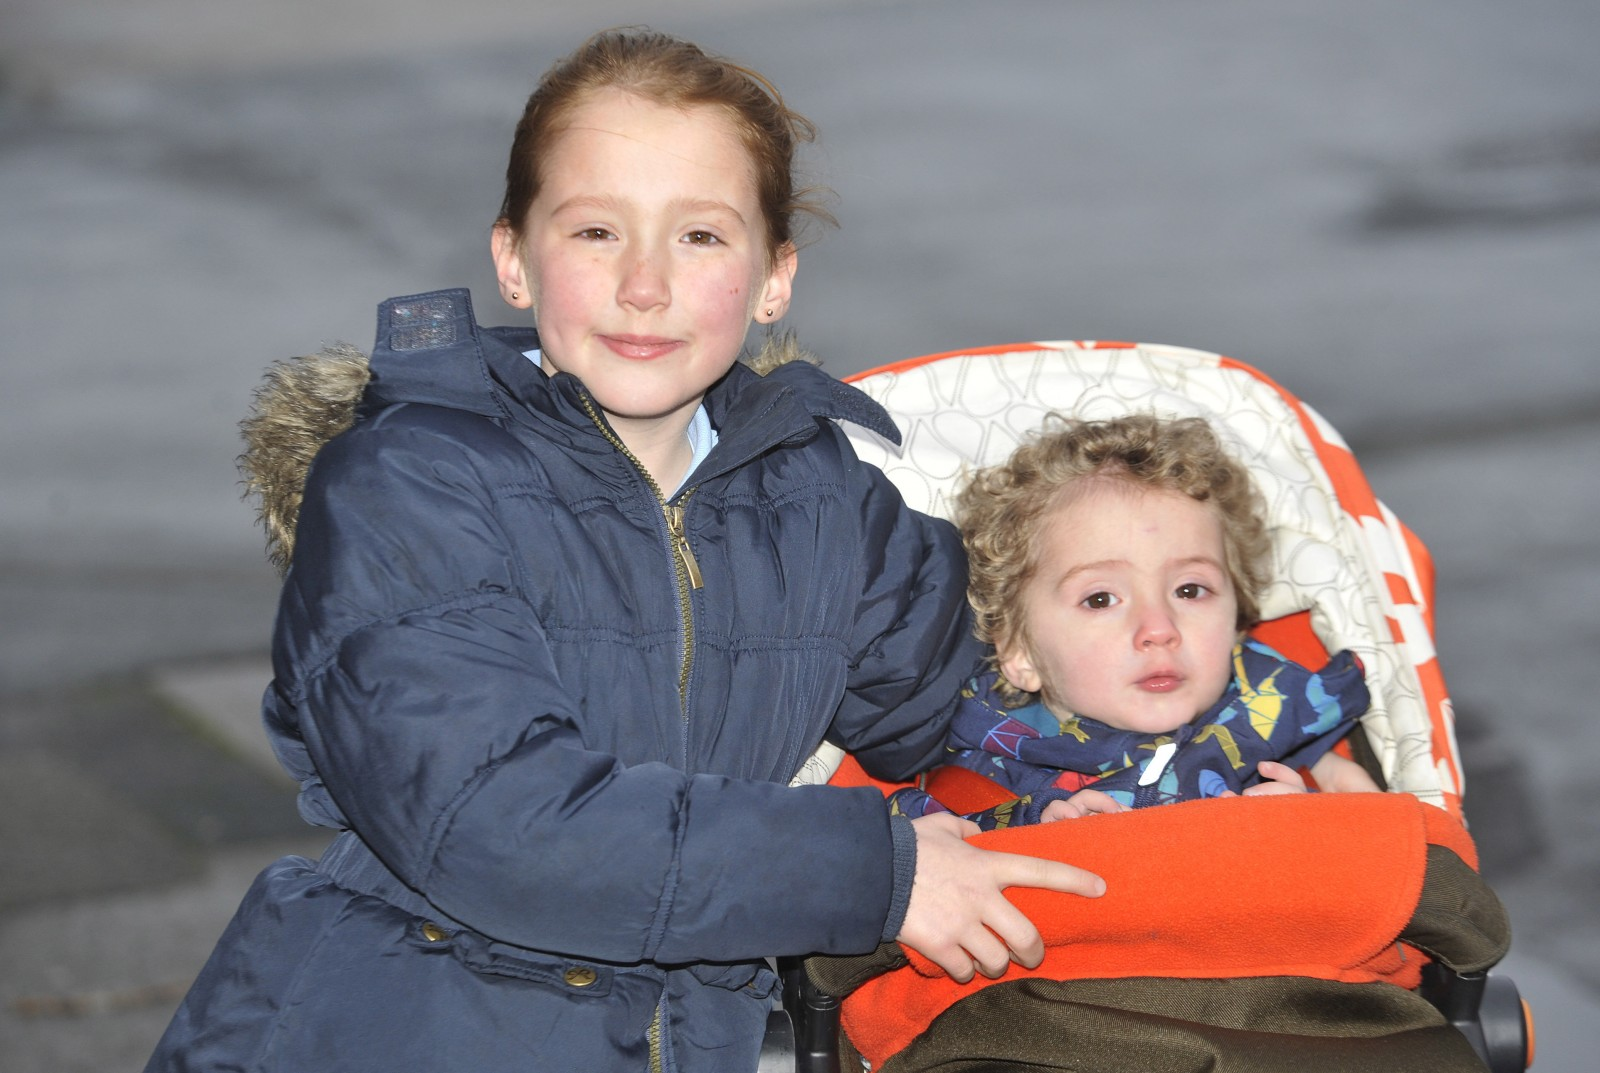 Heroic 8-year-old rescues baby brother after epileptic mum collapses in the street